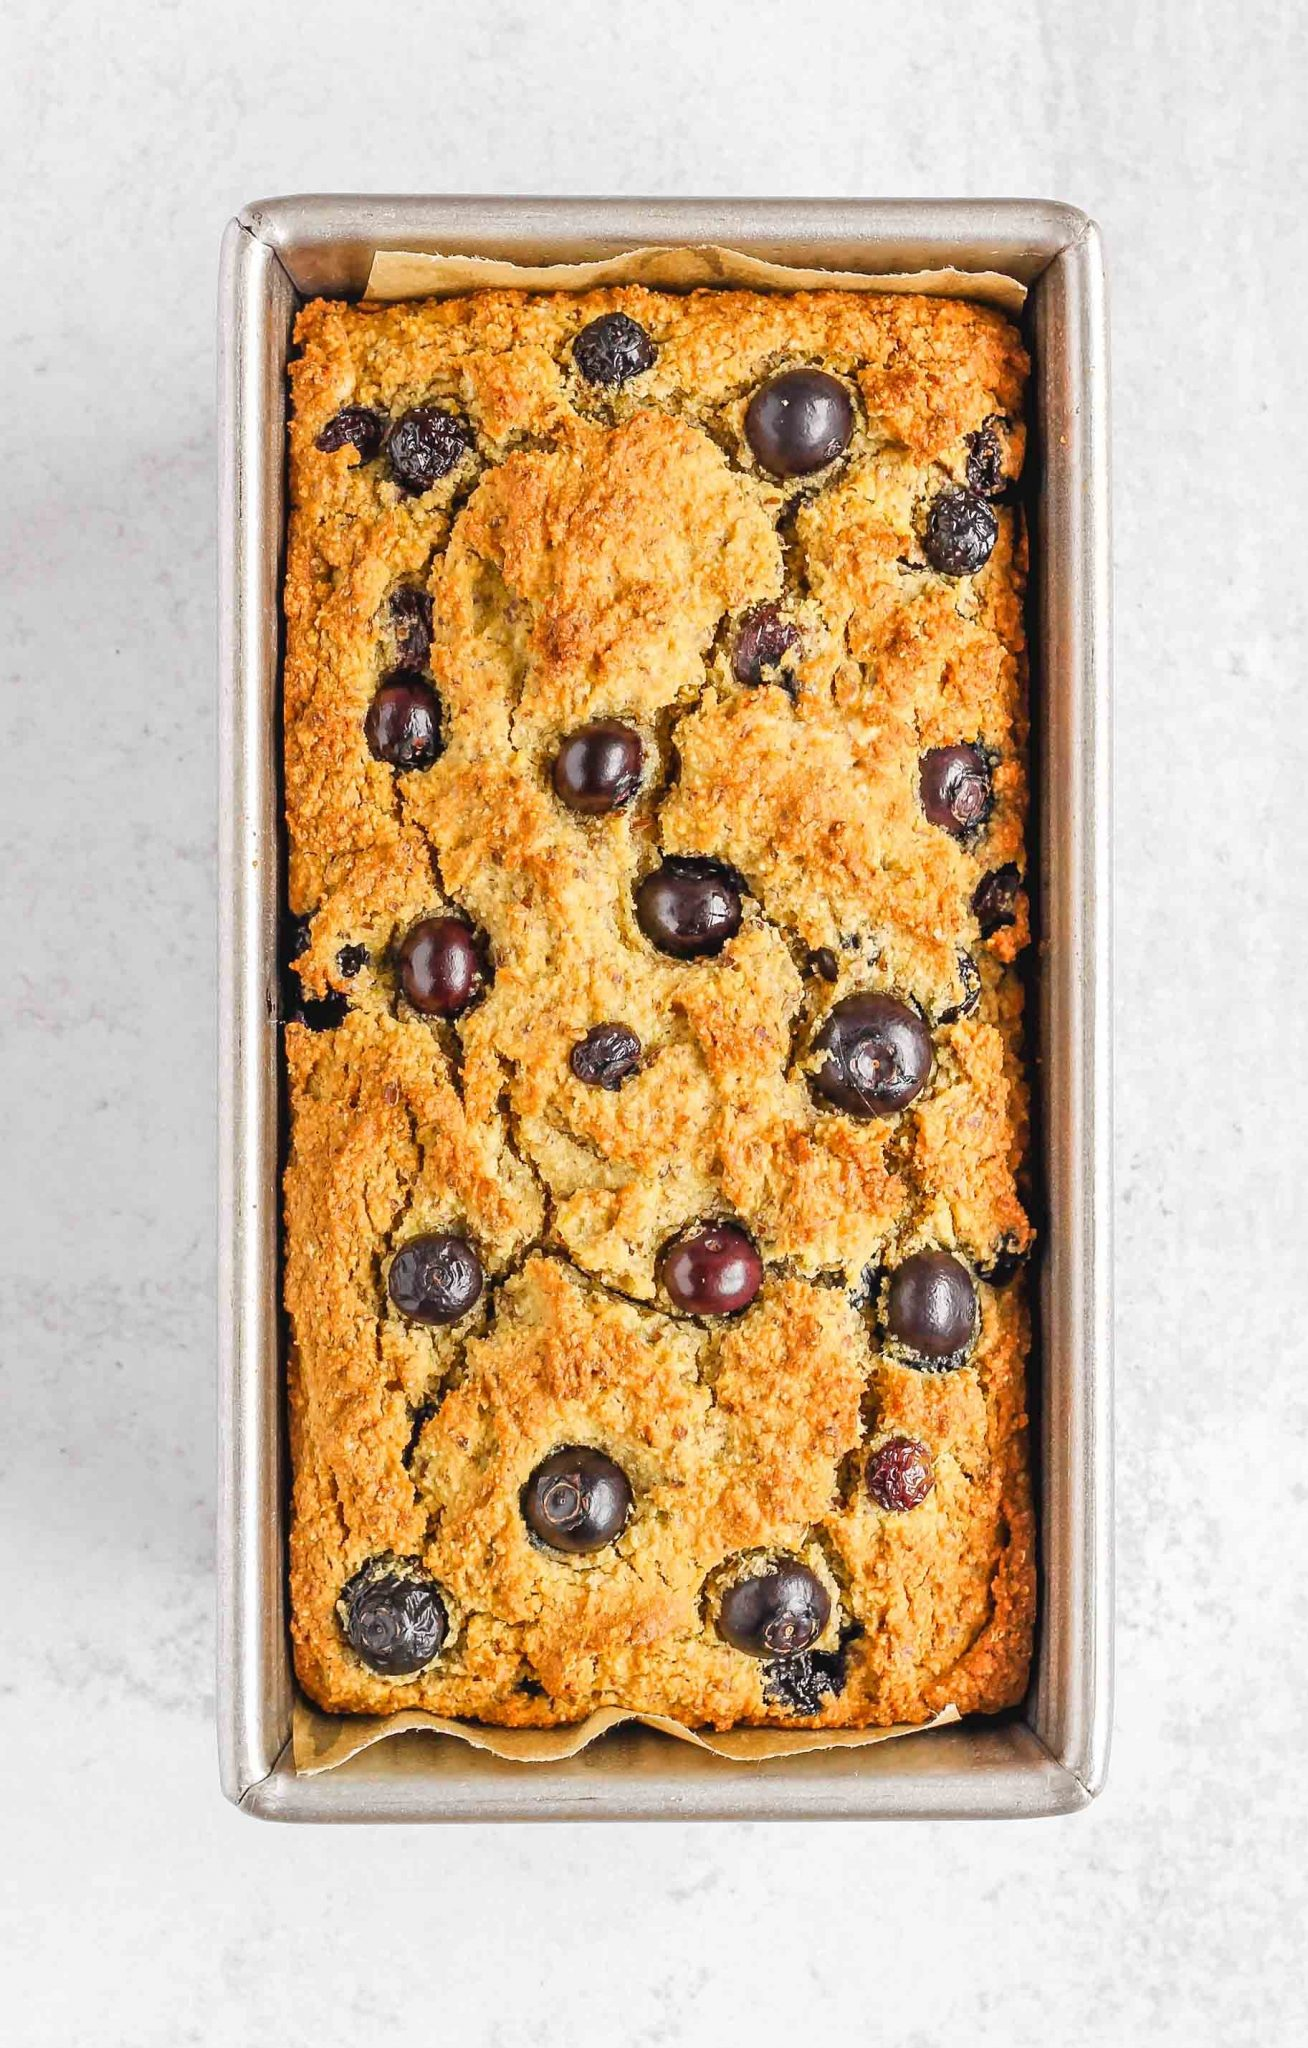 cooked almond flour blueberry bread in a tin bread loaf